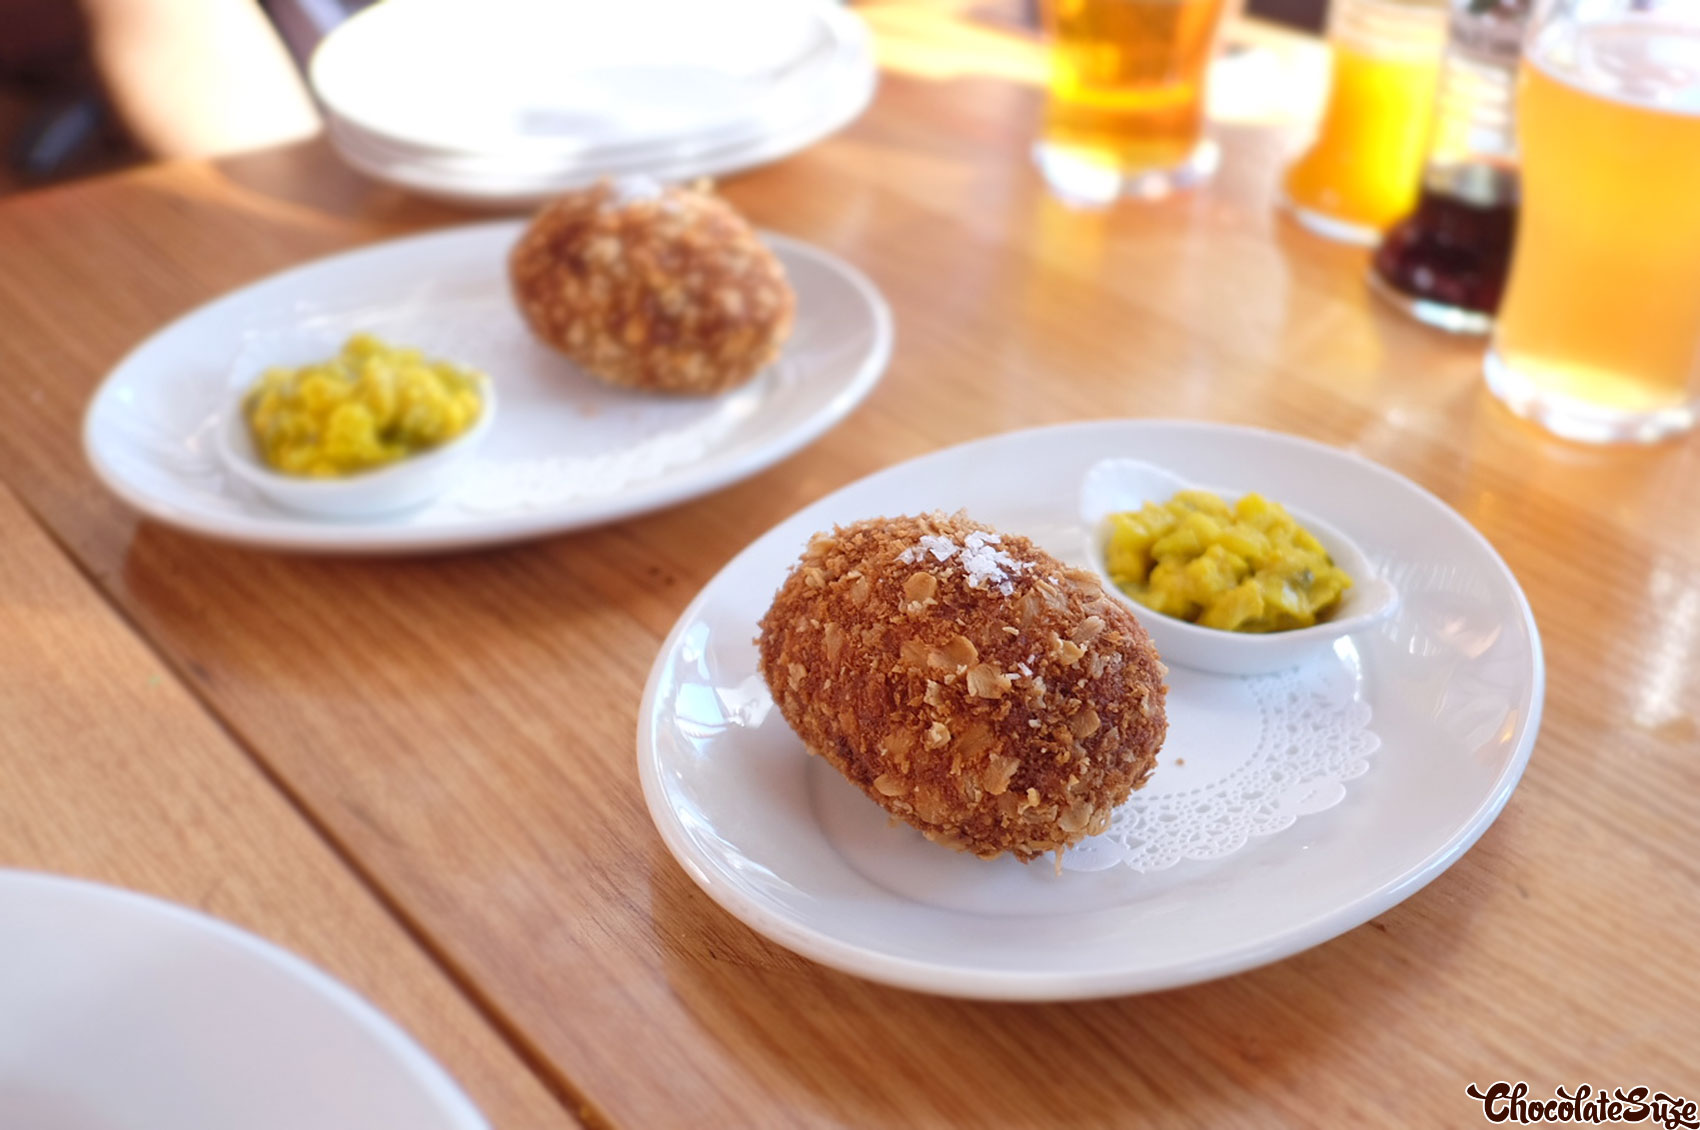 Scotch egg at The Old Fitzroy Hotel, Woolloomooloo